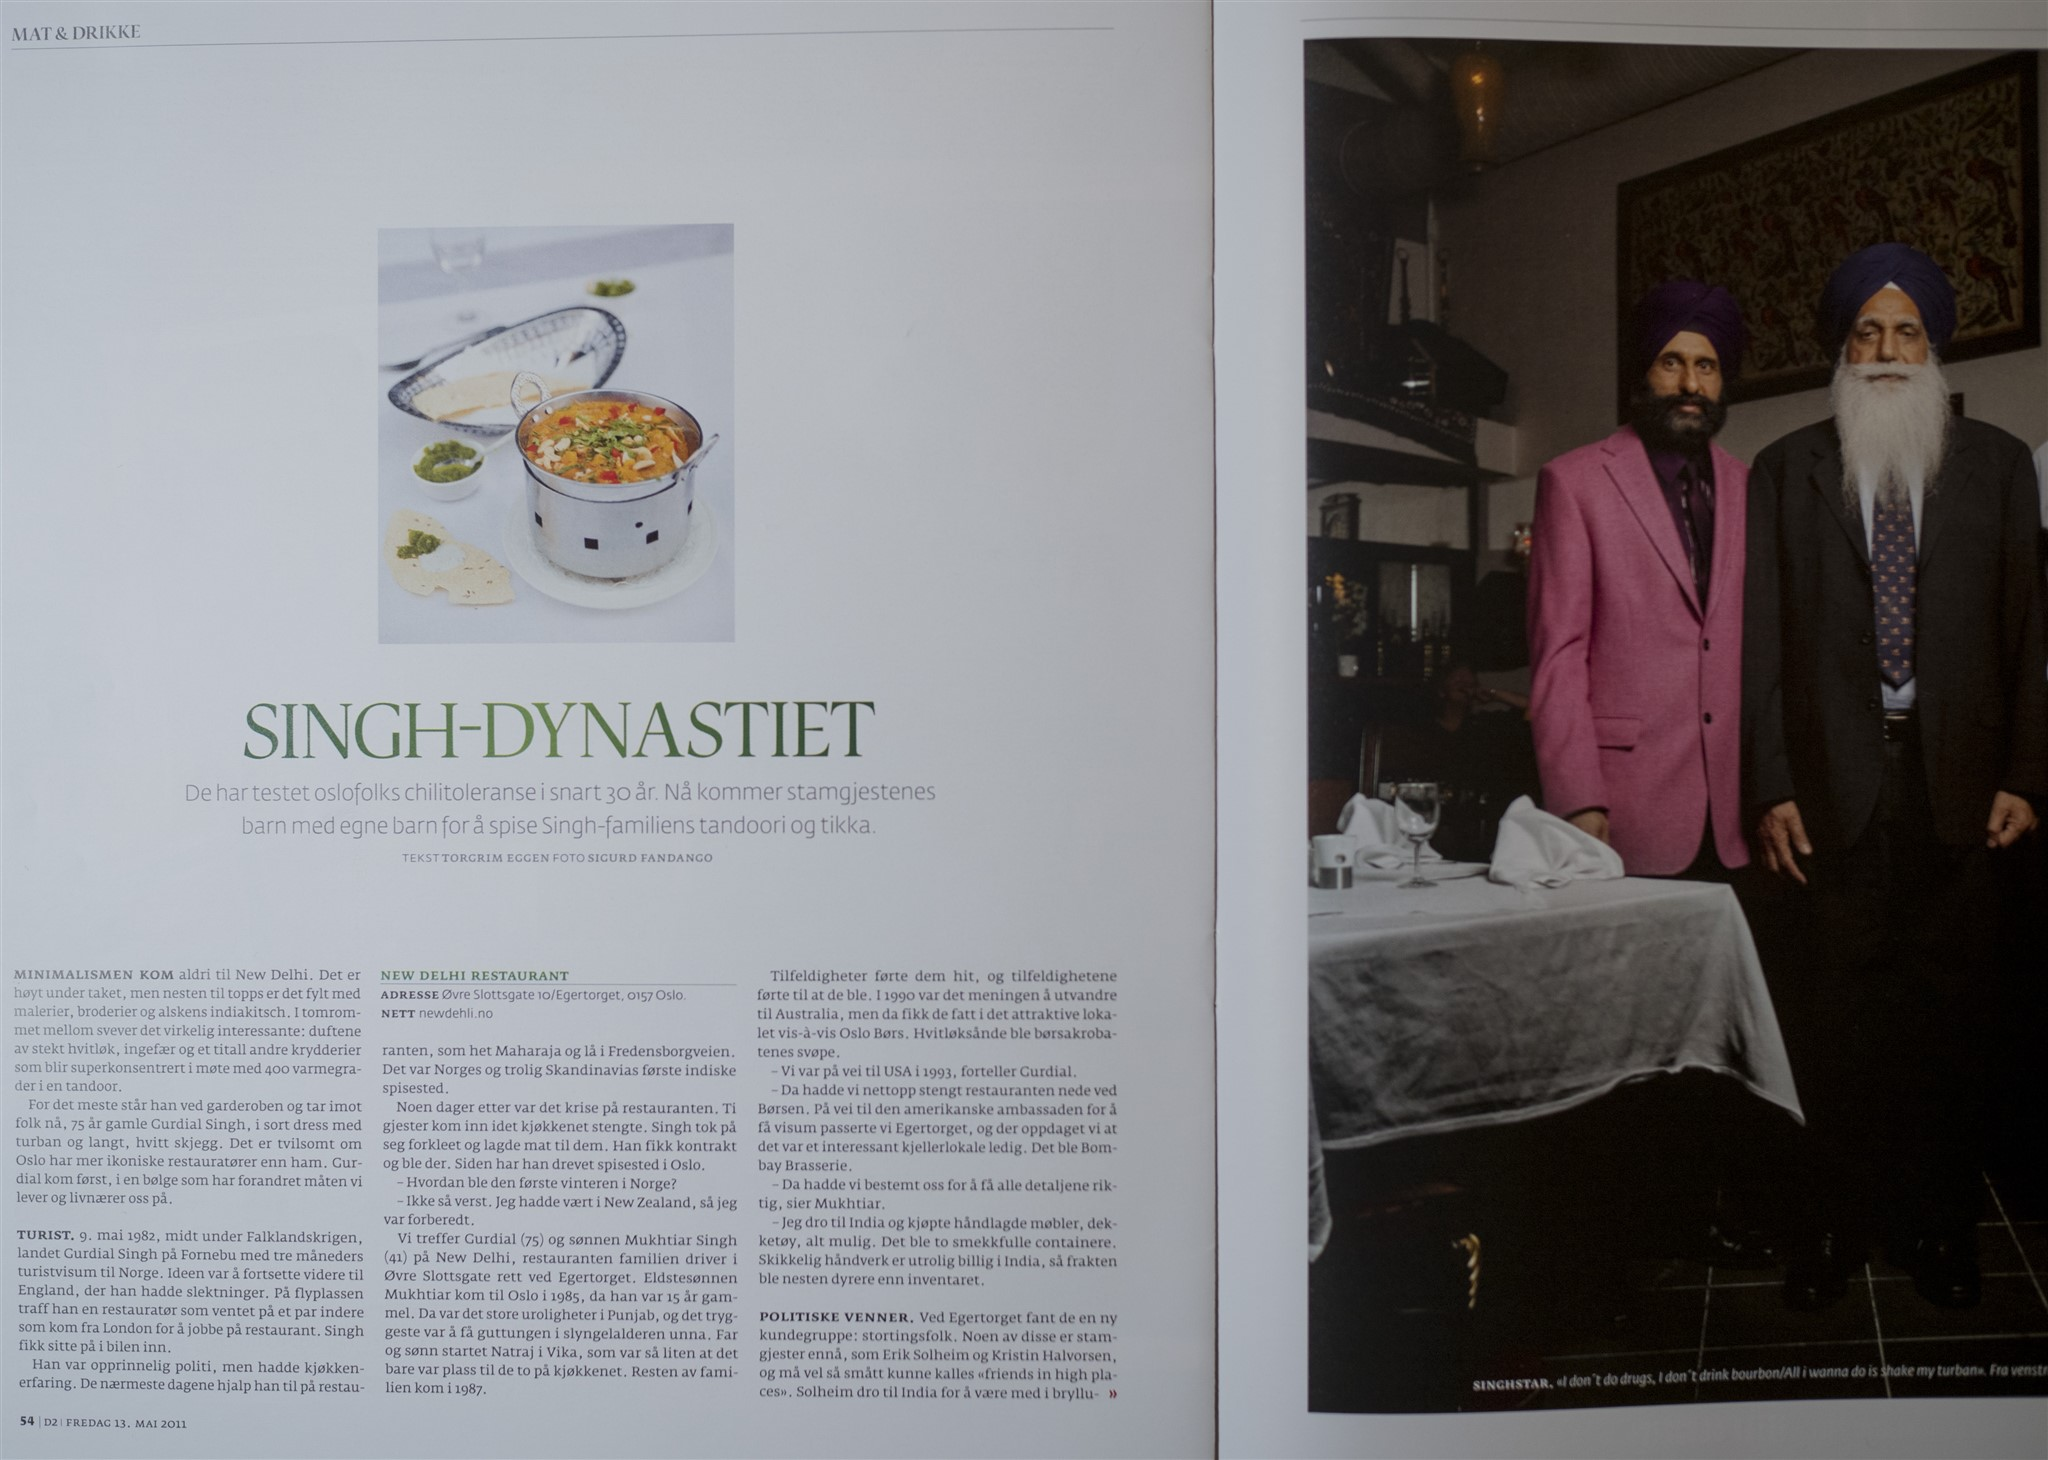 Singh dynastiet Norge